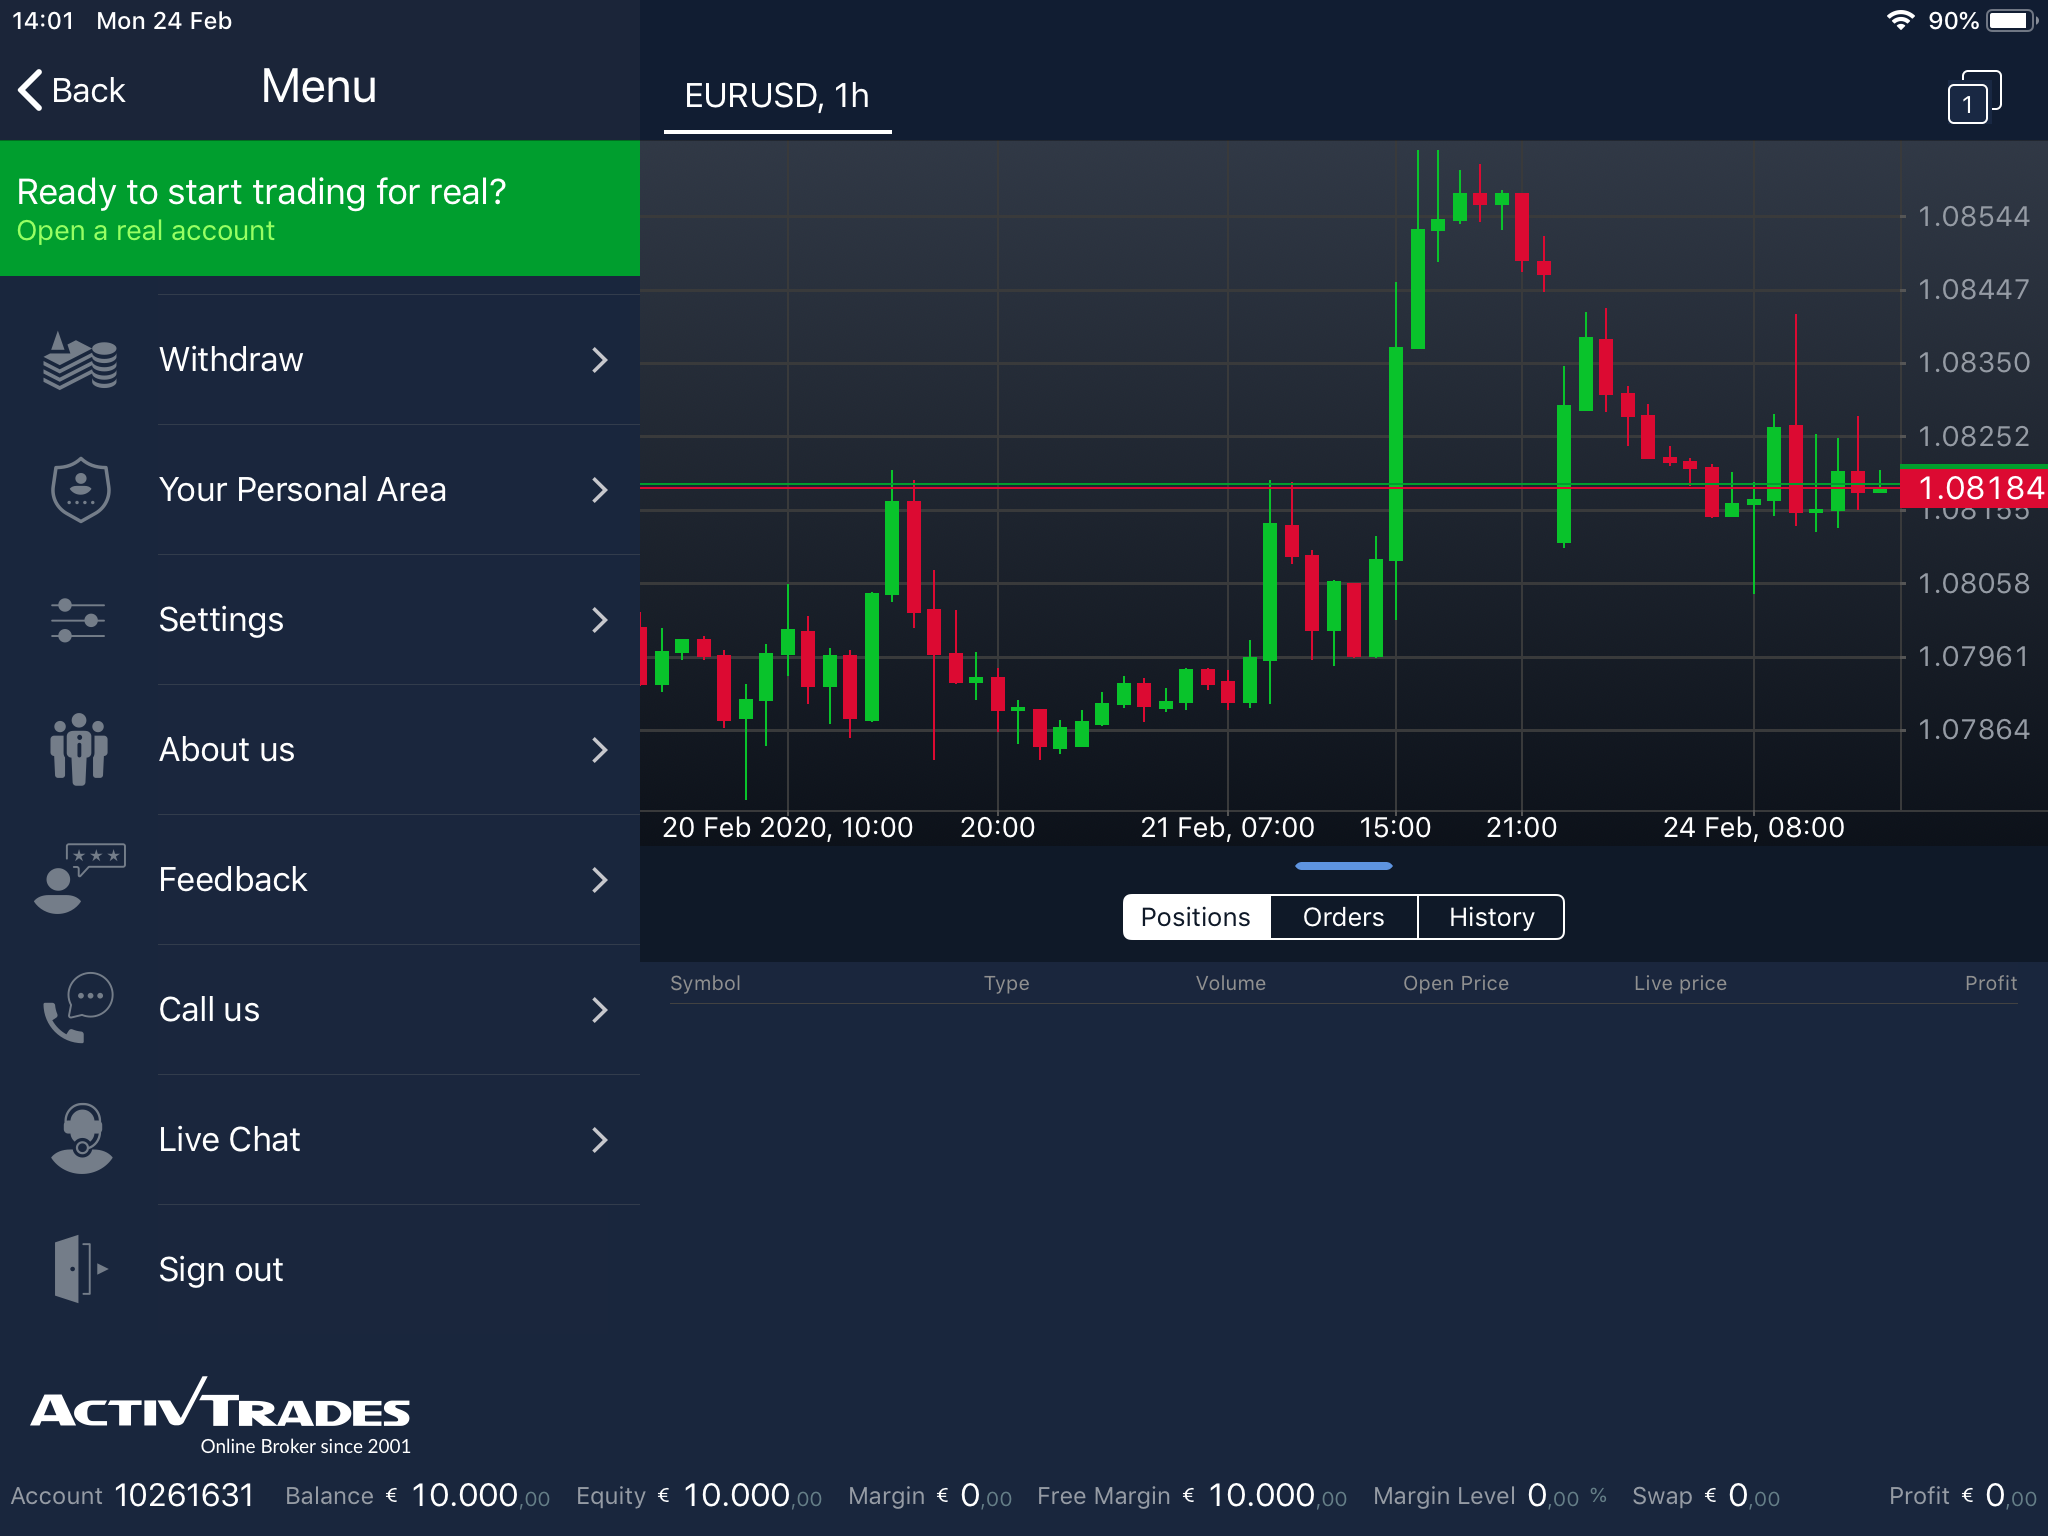 activtrades tablet and smartphone trading